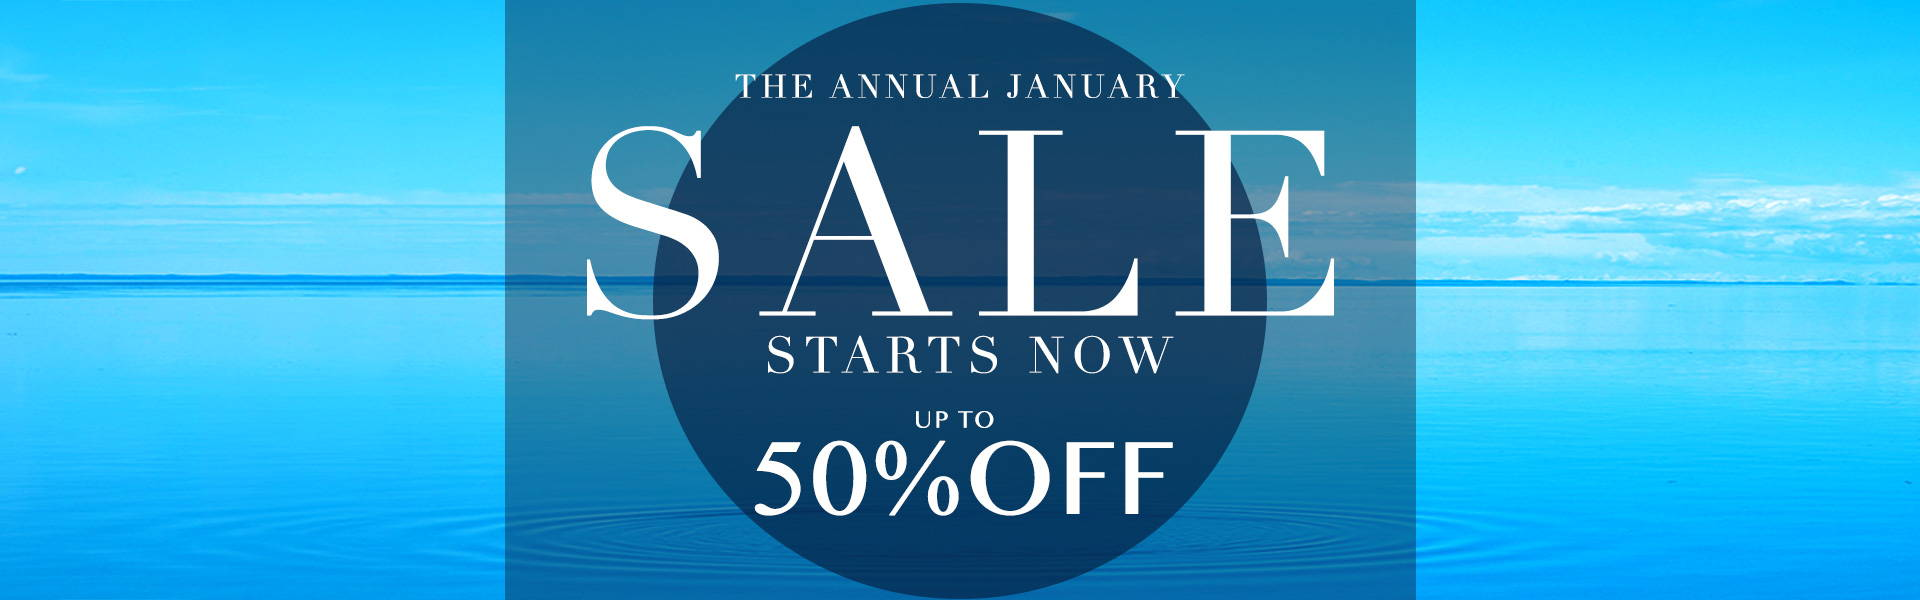 Shop the Ron Herman 50% OFF January Sale